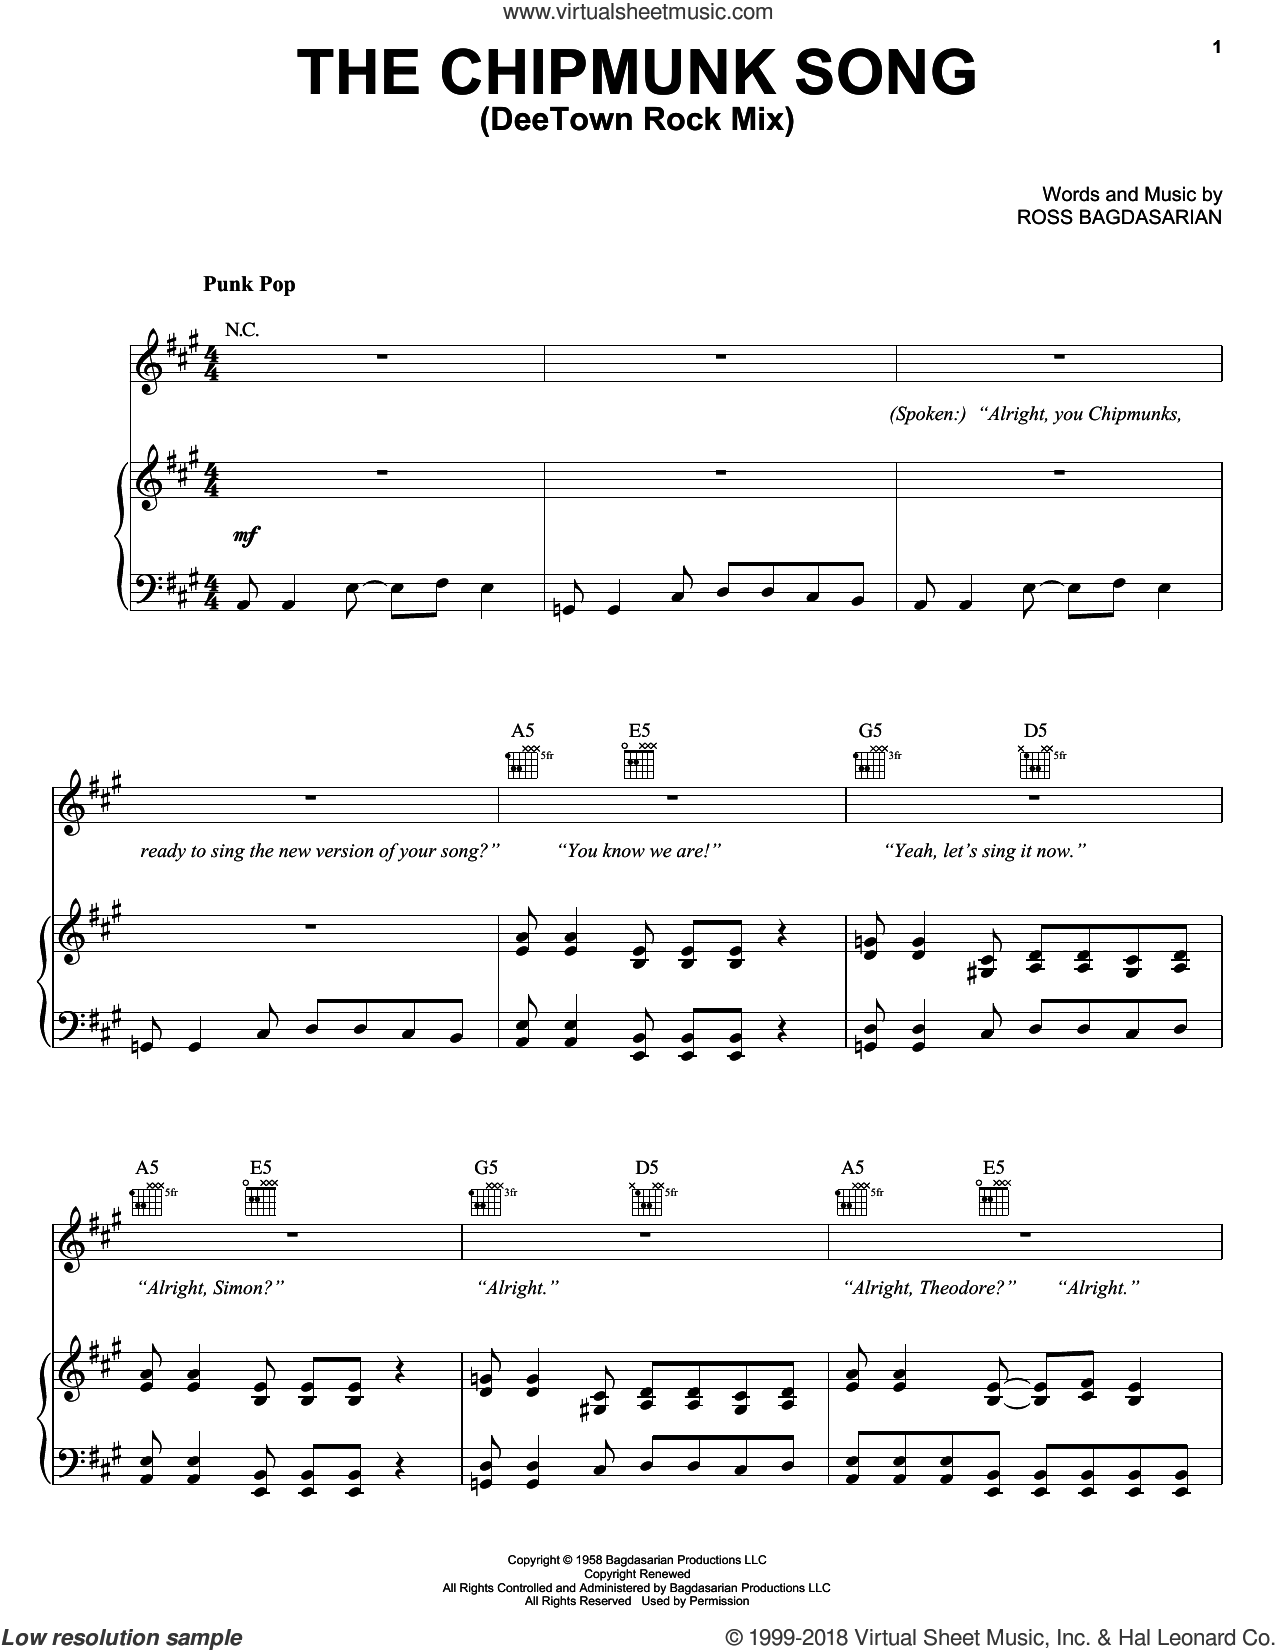 The Chipmunk Song (DeeTown Rock Mix) sheet music for voice, piano or guitar by Alvin And The Chipmunks, Alvin And The Chipmunks (Movie) and Ross Bagdasarian, intermediate skill level